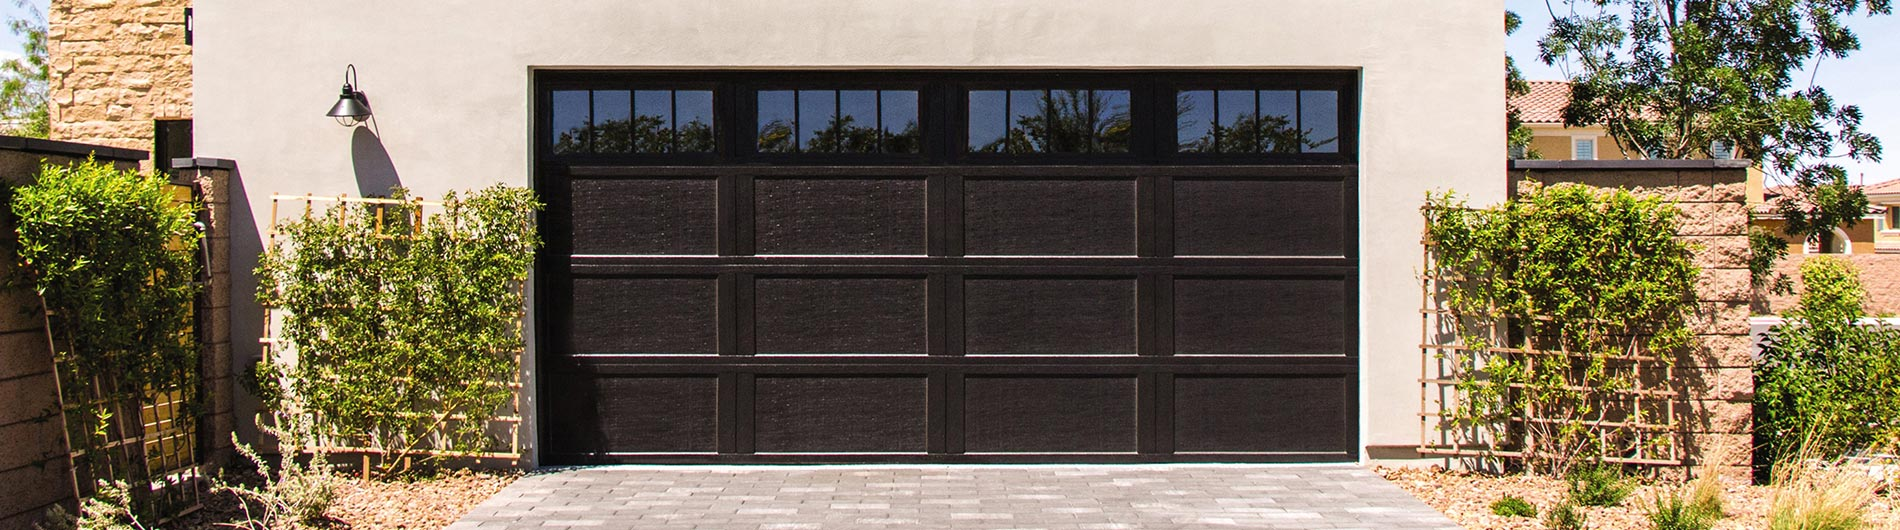 Wayne doors stunning faux wood garage door from wayne Wayne dalton garage doors